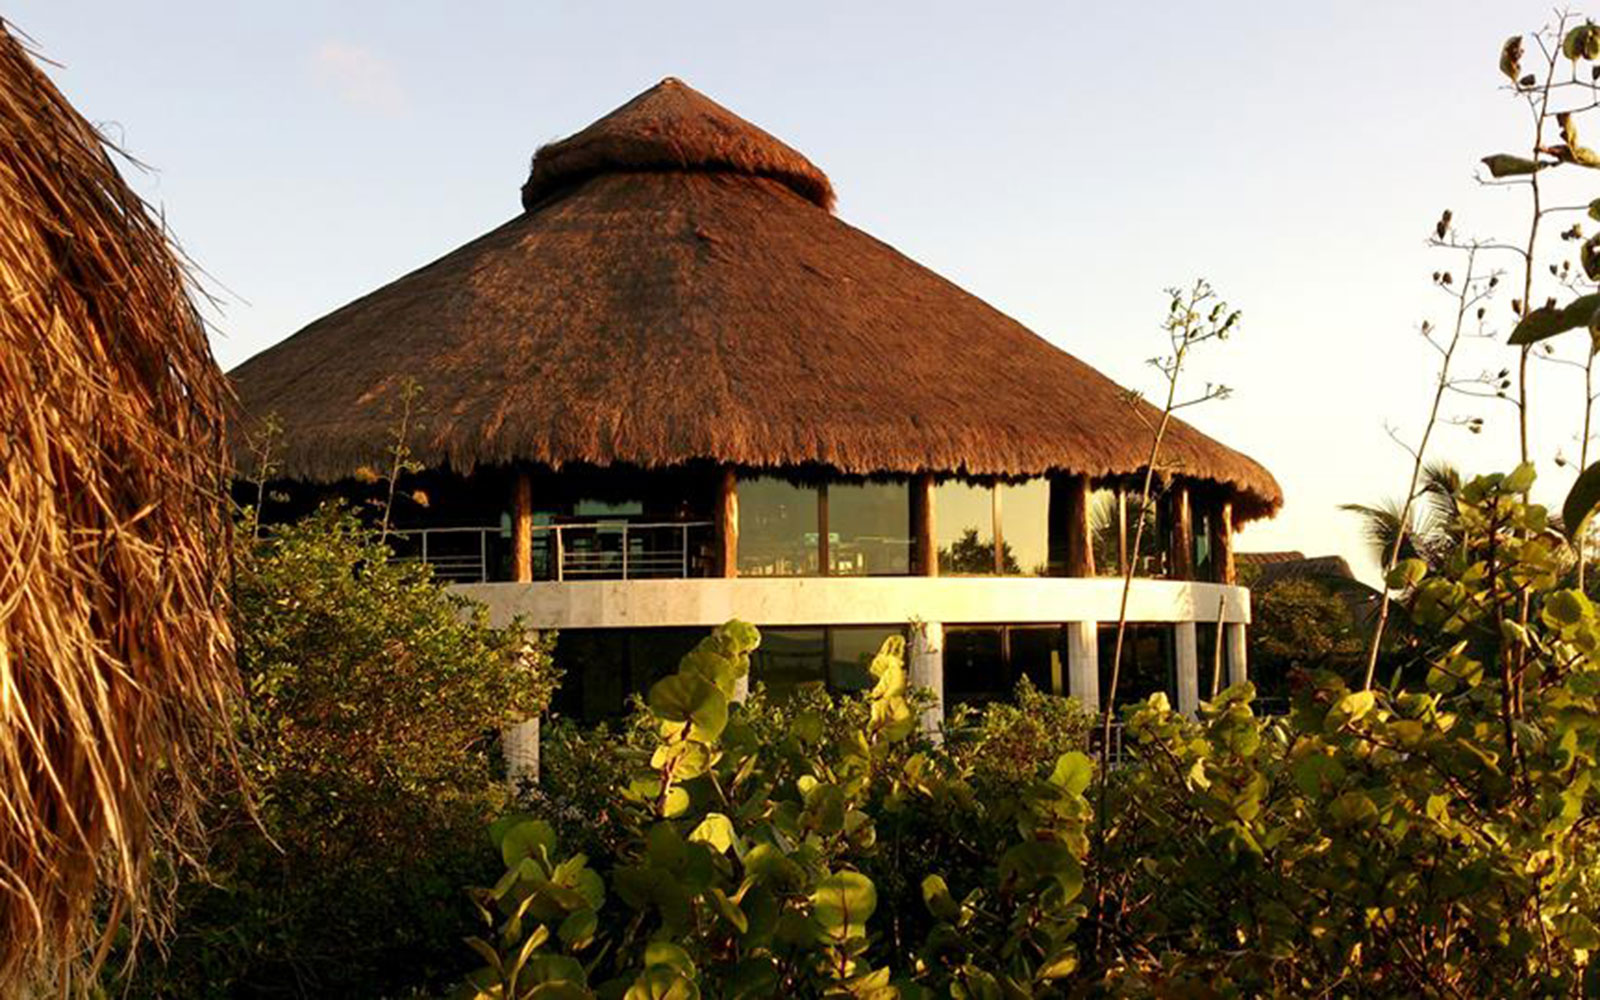 Mexico's Greenest Hotels Offer Guests a Certain 'Om'-biance: Xixim Unique Mayan Hotel in Celestún